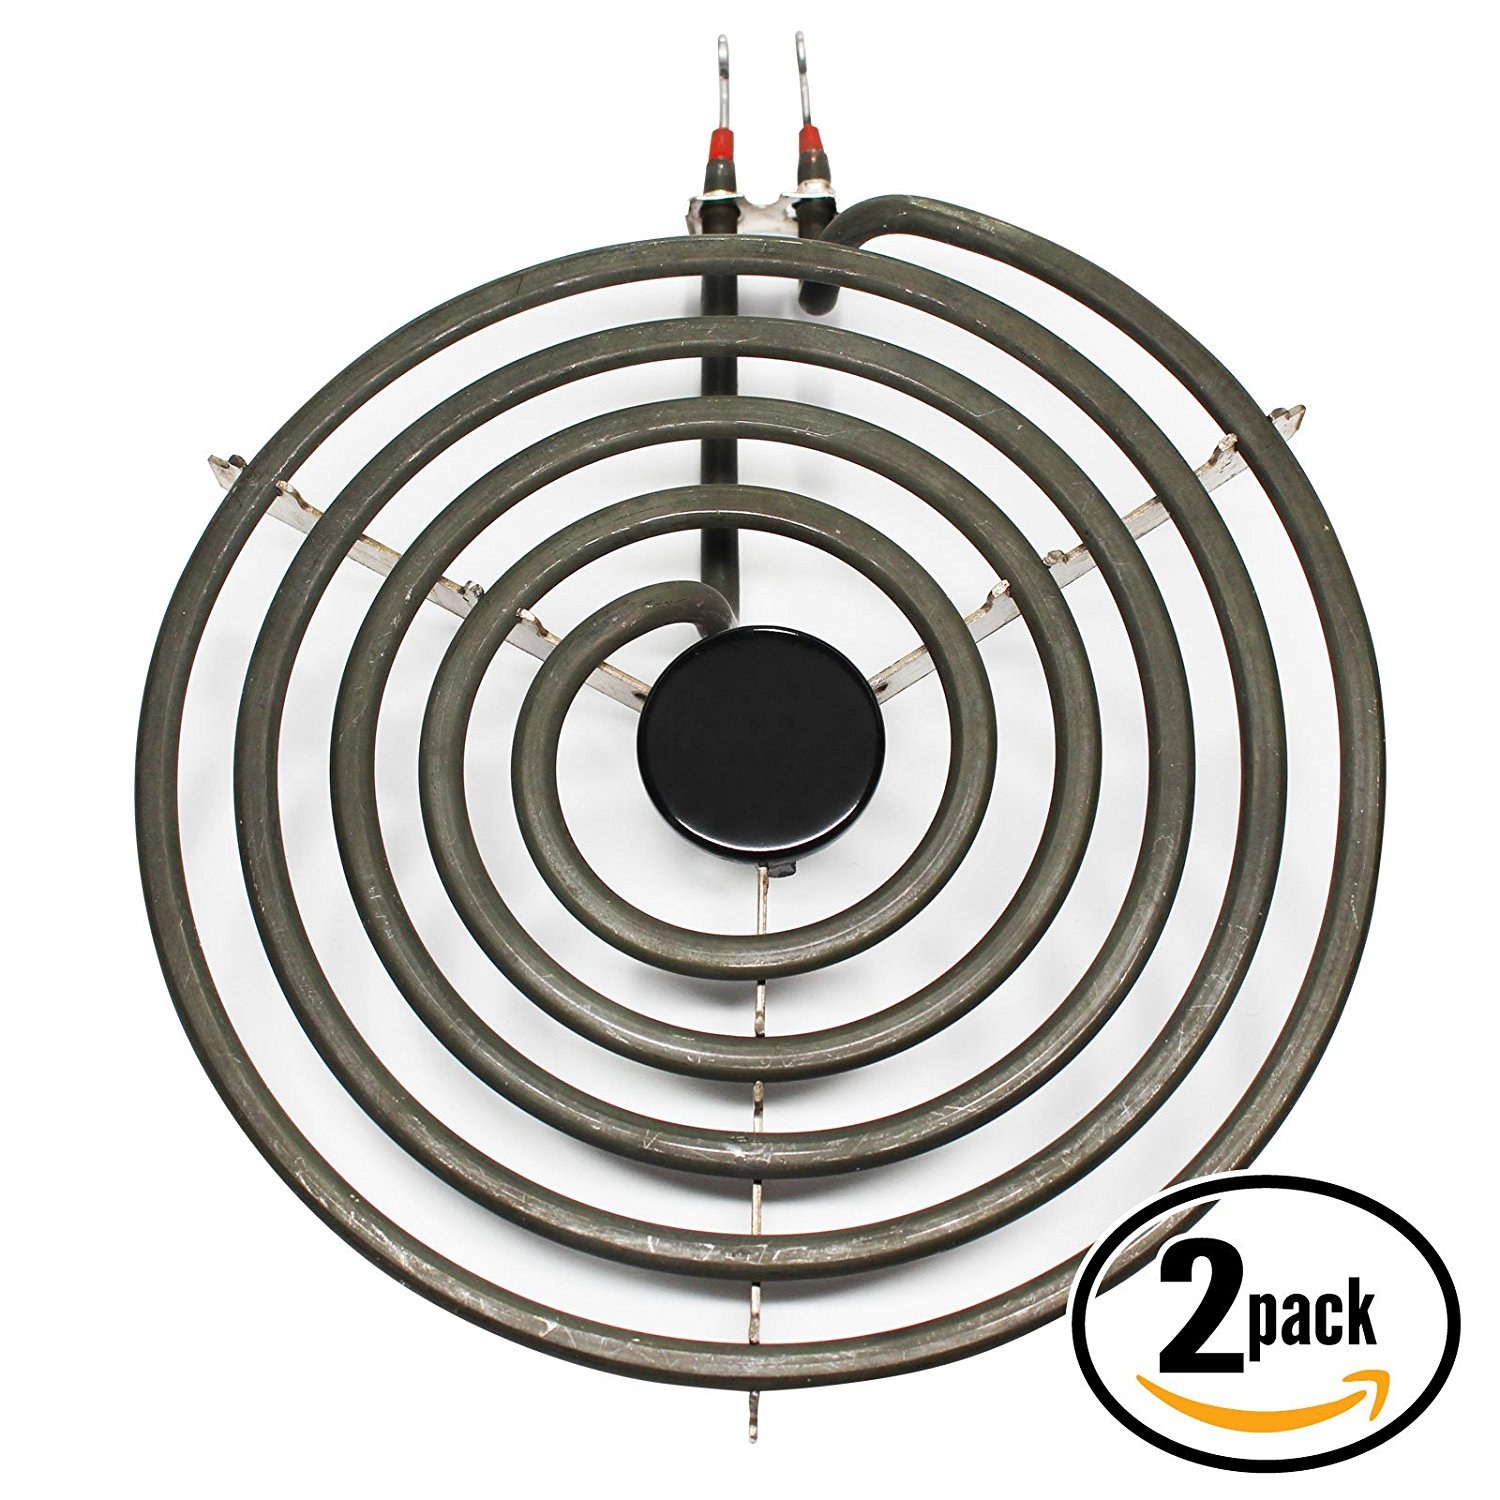 2-Pack Replacement Frigidaire RE36BNW1 8 inch 5 Turns Surface Burner Element - Compatible Frigidaire 316442301 Heating Element for Range, Stove & Cooktop